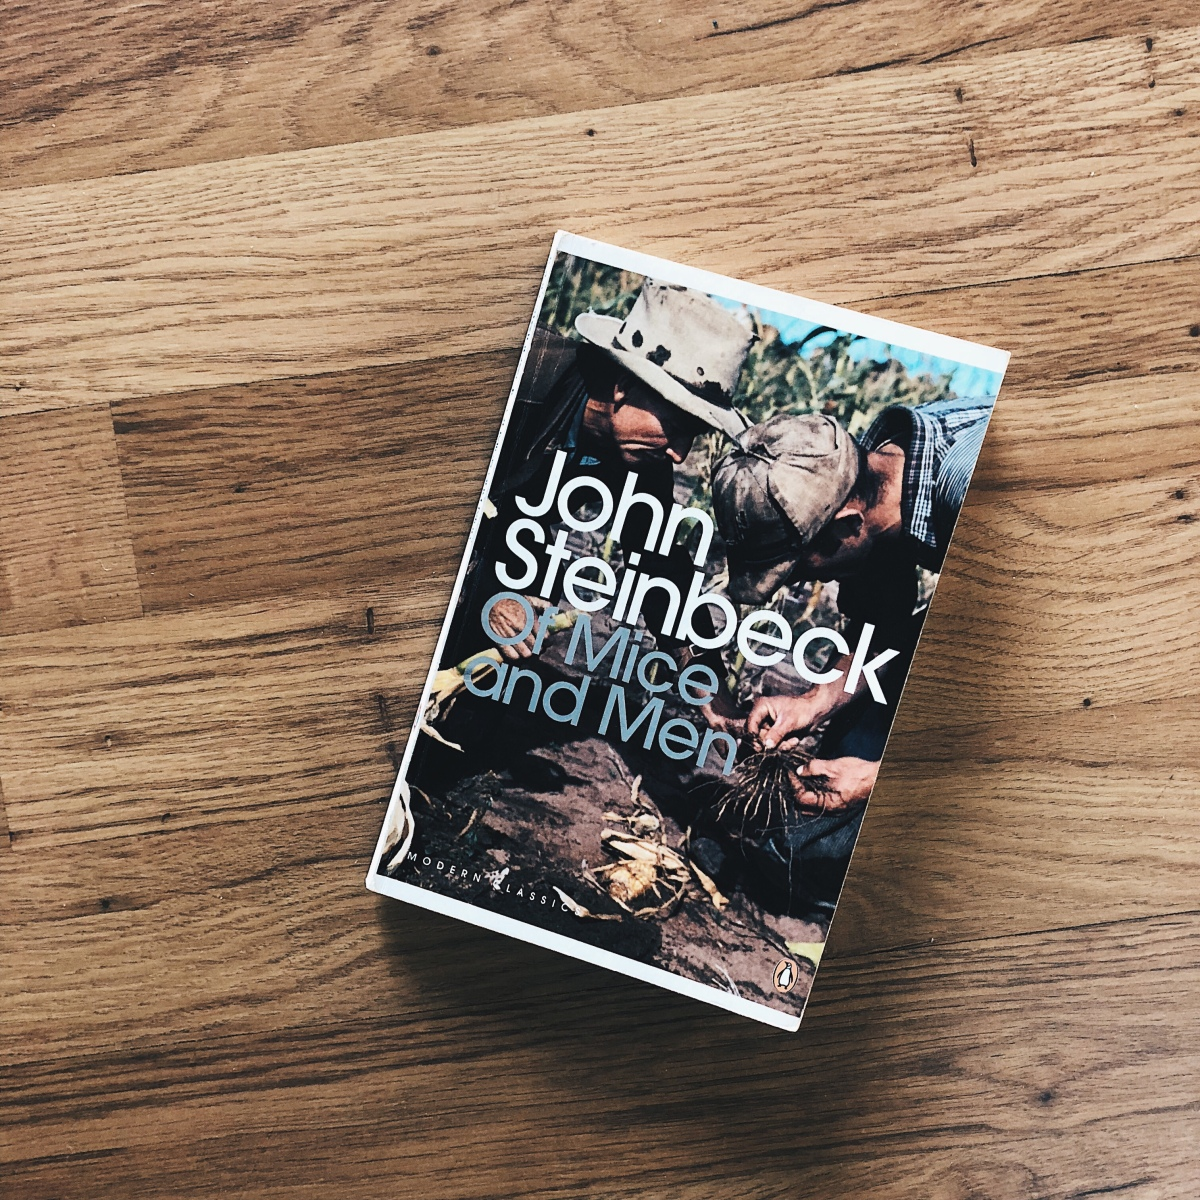 the friendship of george and lennie in of mice and men a novel by john steinbeck Steinbeck's presentation of the friendship between george and lennie in 'of mice and men' analyse steinbeck's presentation of the friendship between george.